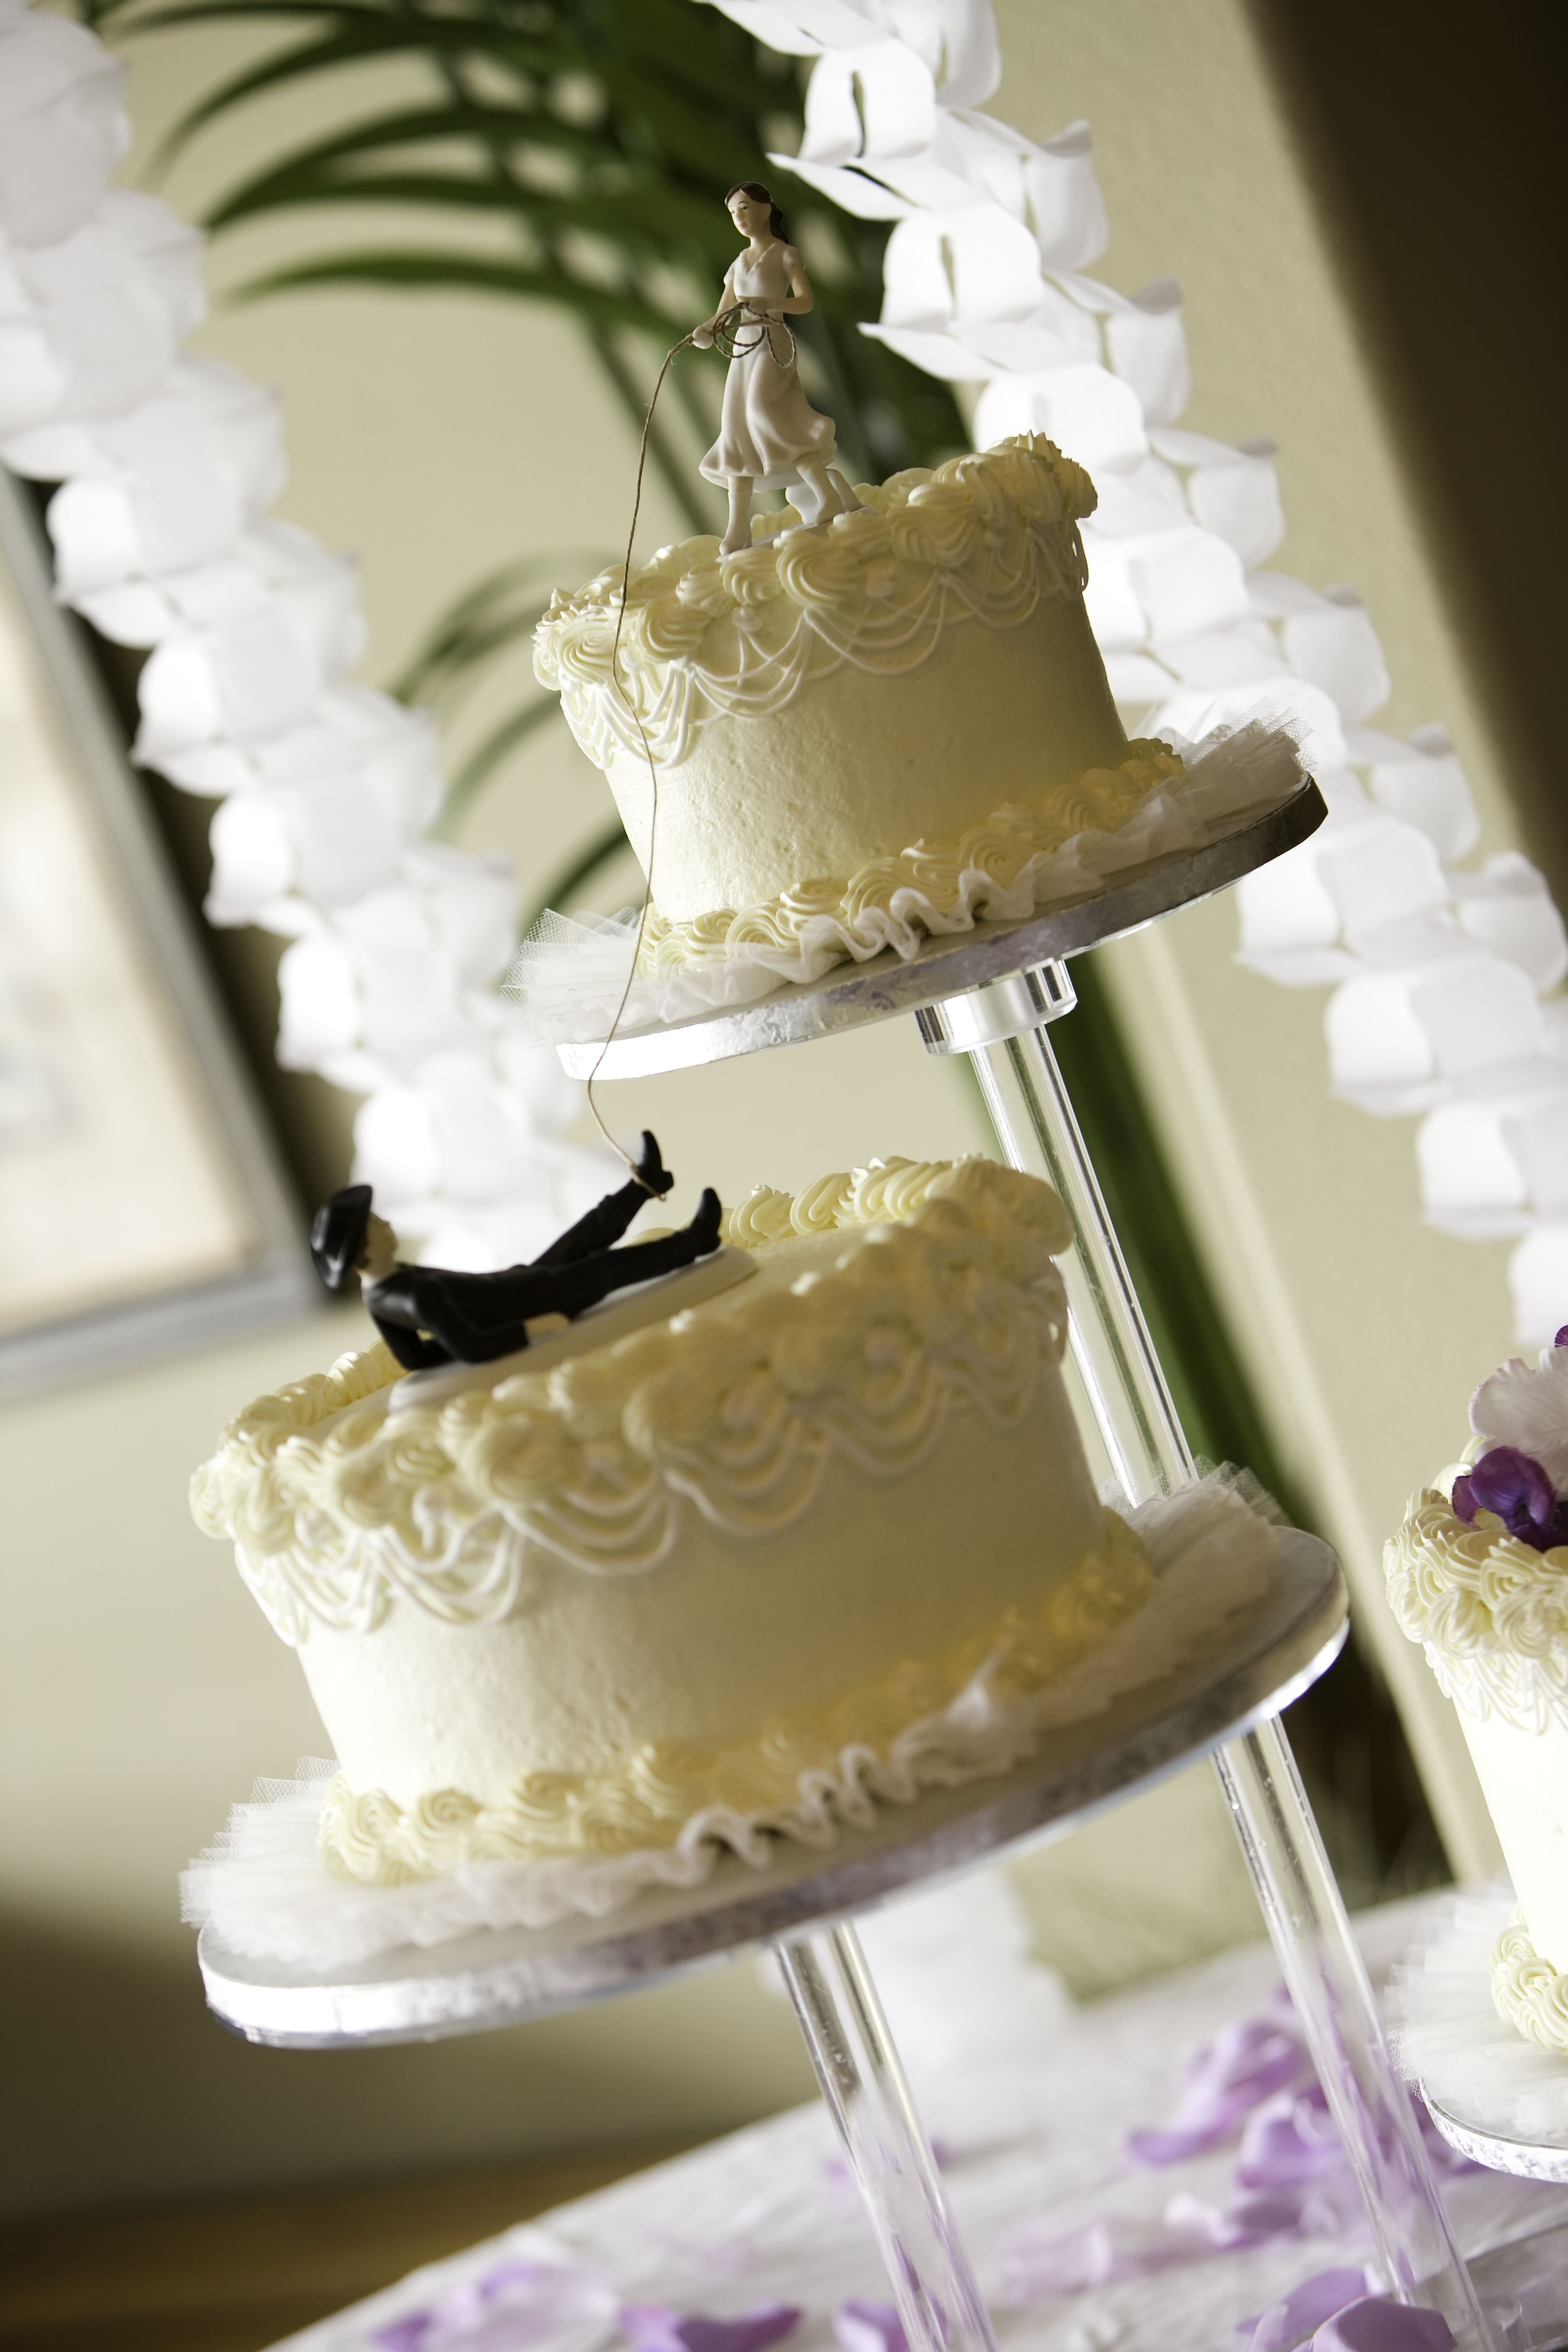 Pin by Exulting Images on Wedding Centerpieces, Cakes